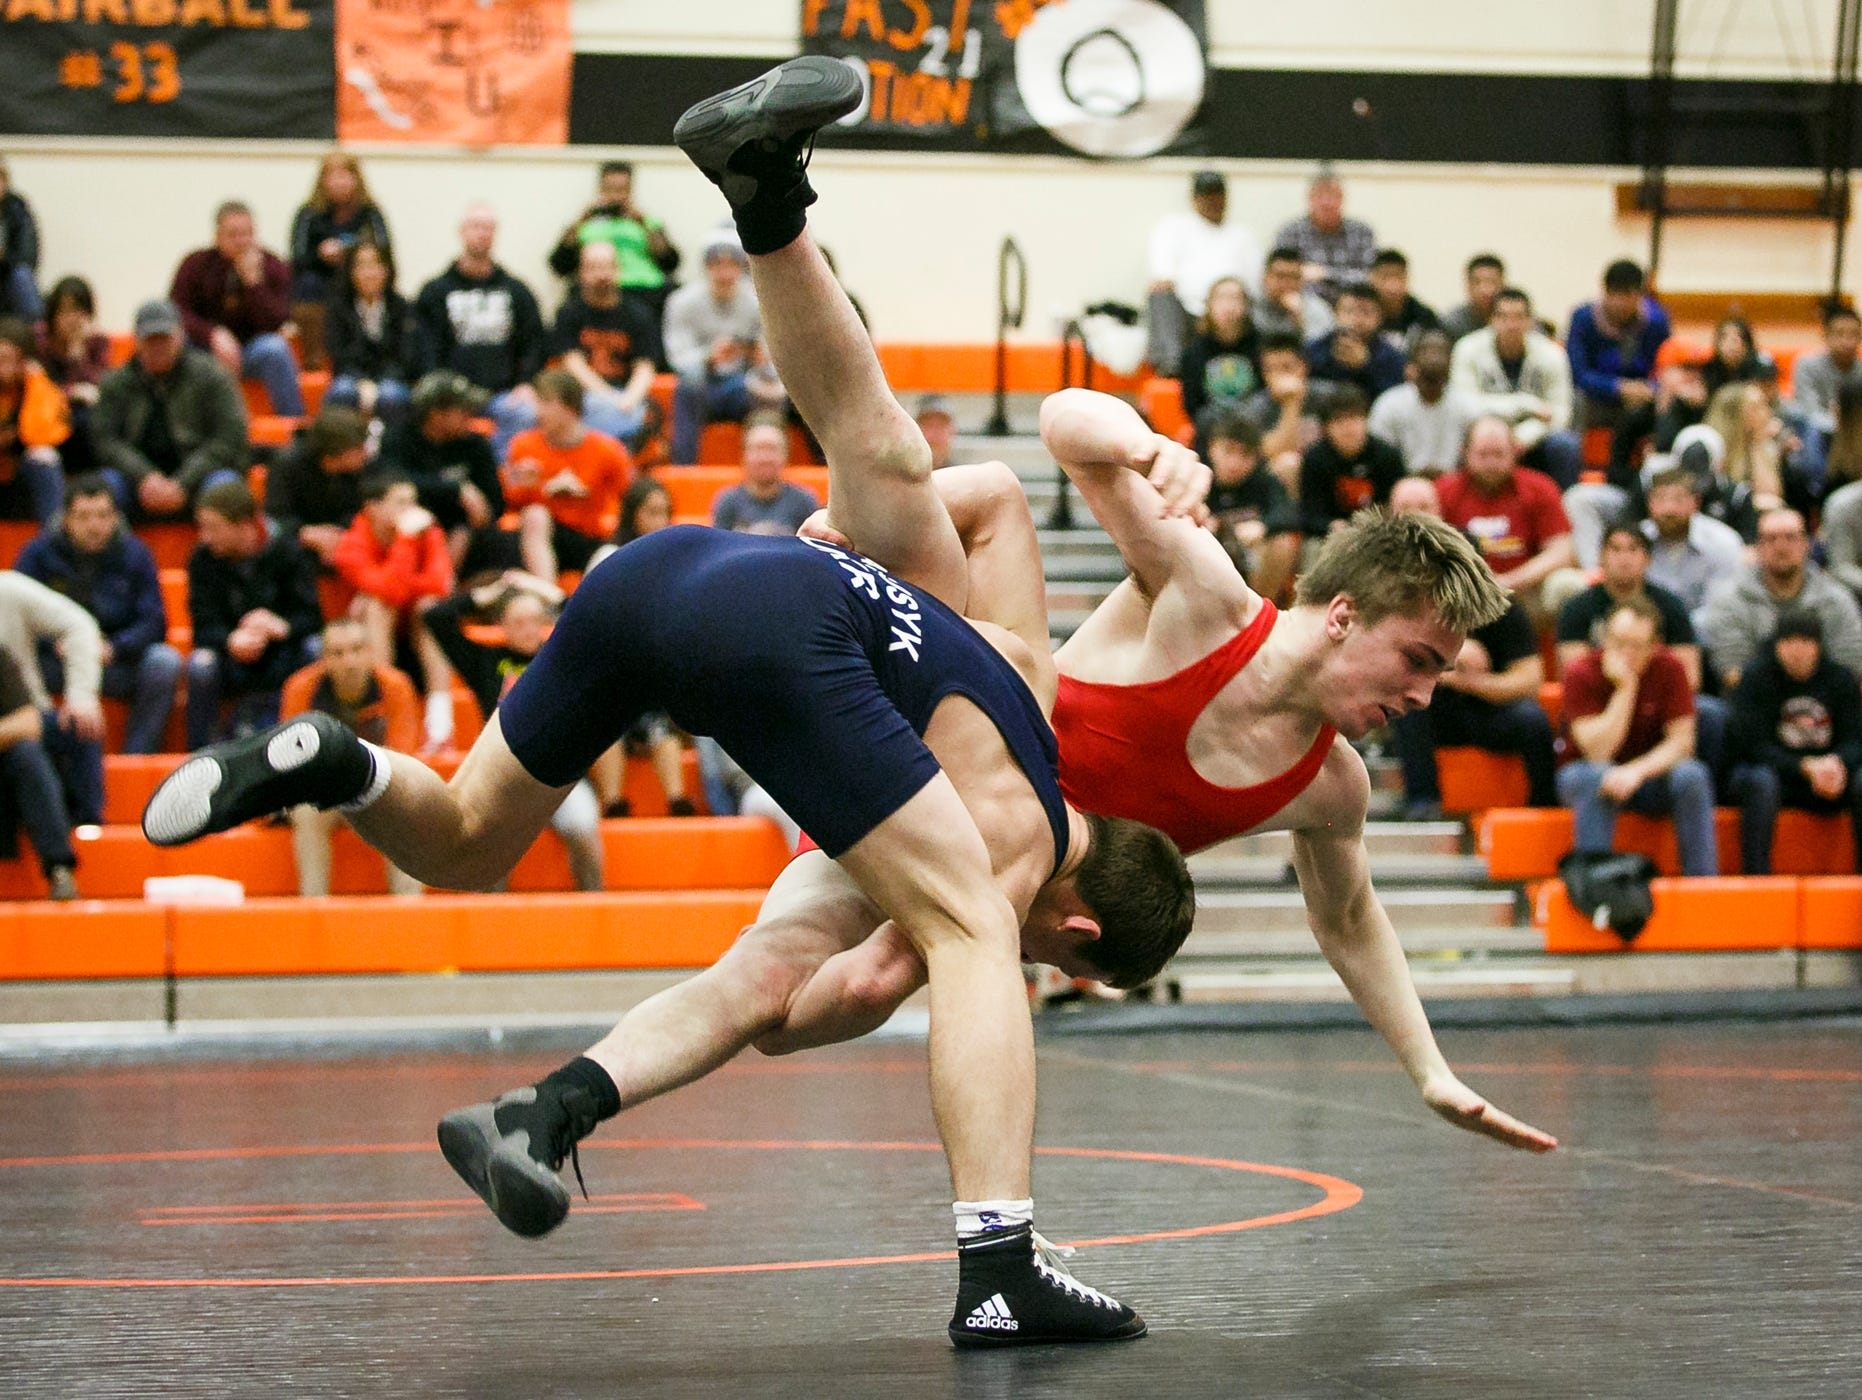 Sprague's Michael Murphy is taken down by Ukraine's Ivan Marusyk, left, in a match at Sprague High School on Tuesday, March 8, 2017. Members of the Ukrainian Junior National Team are touring Oregon, and stopped in Salem to compete against area high school all-stars.